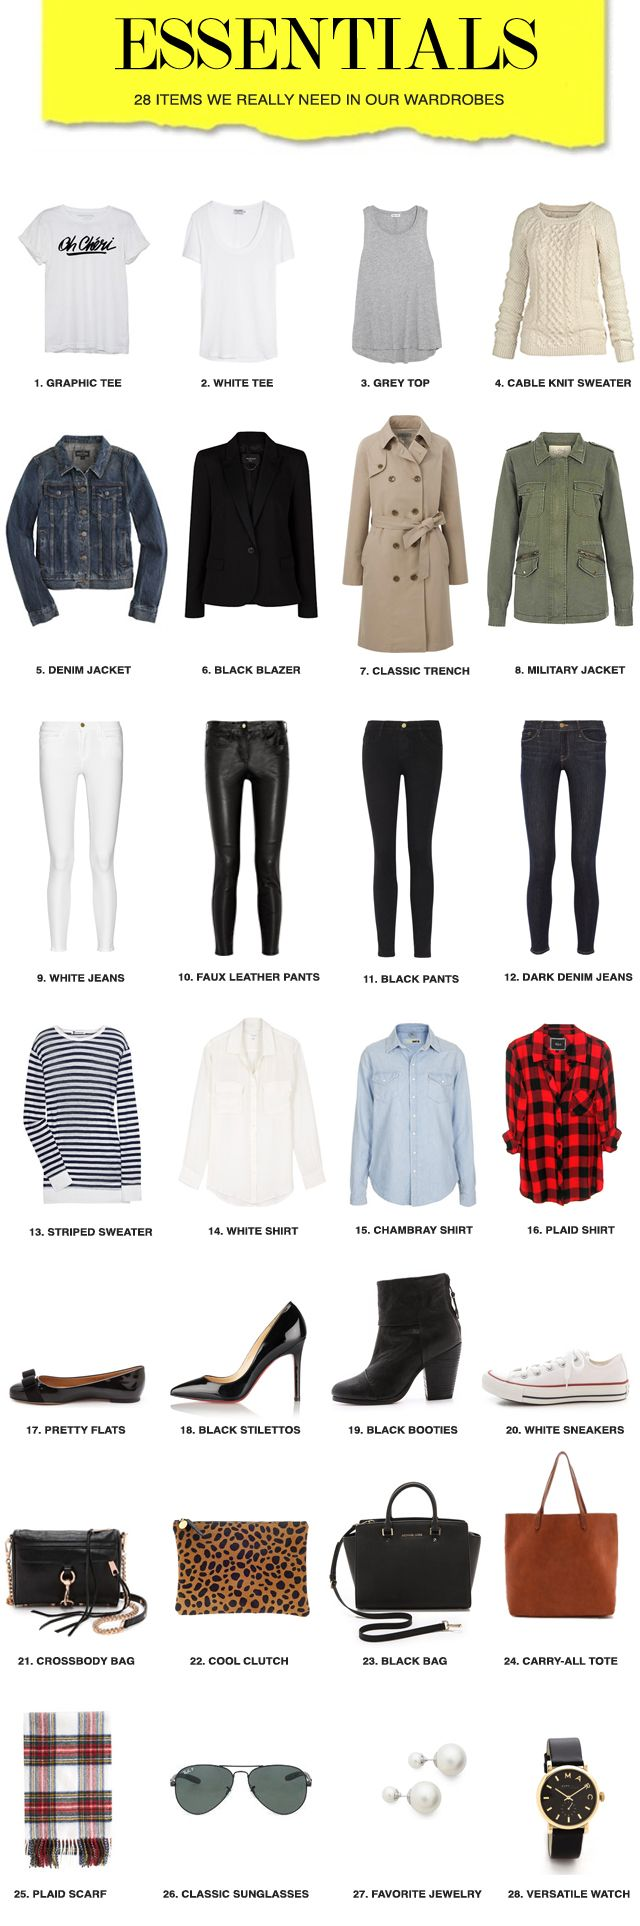 Elegant FASHION: 28 ESSENTIAL ITEMS (MadeByGirl). Closet Essentials ListMinimalist  ...